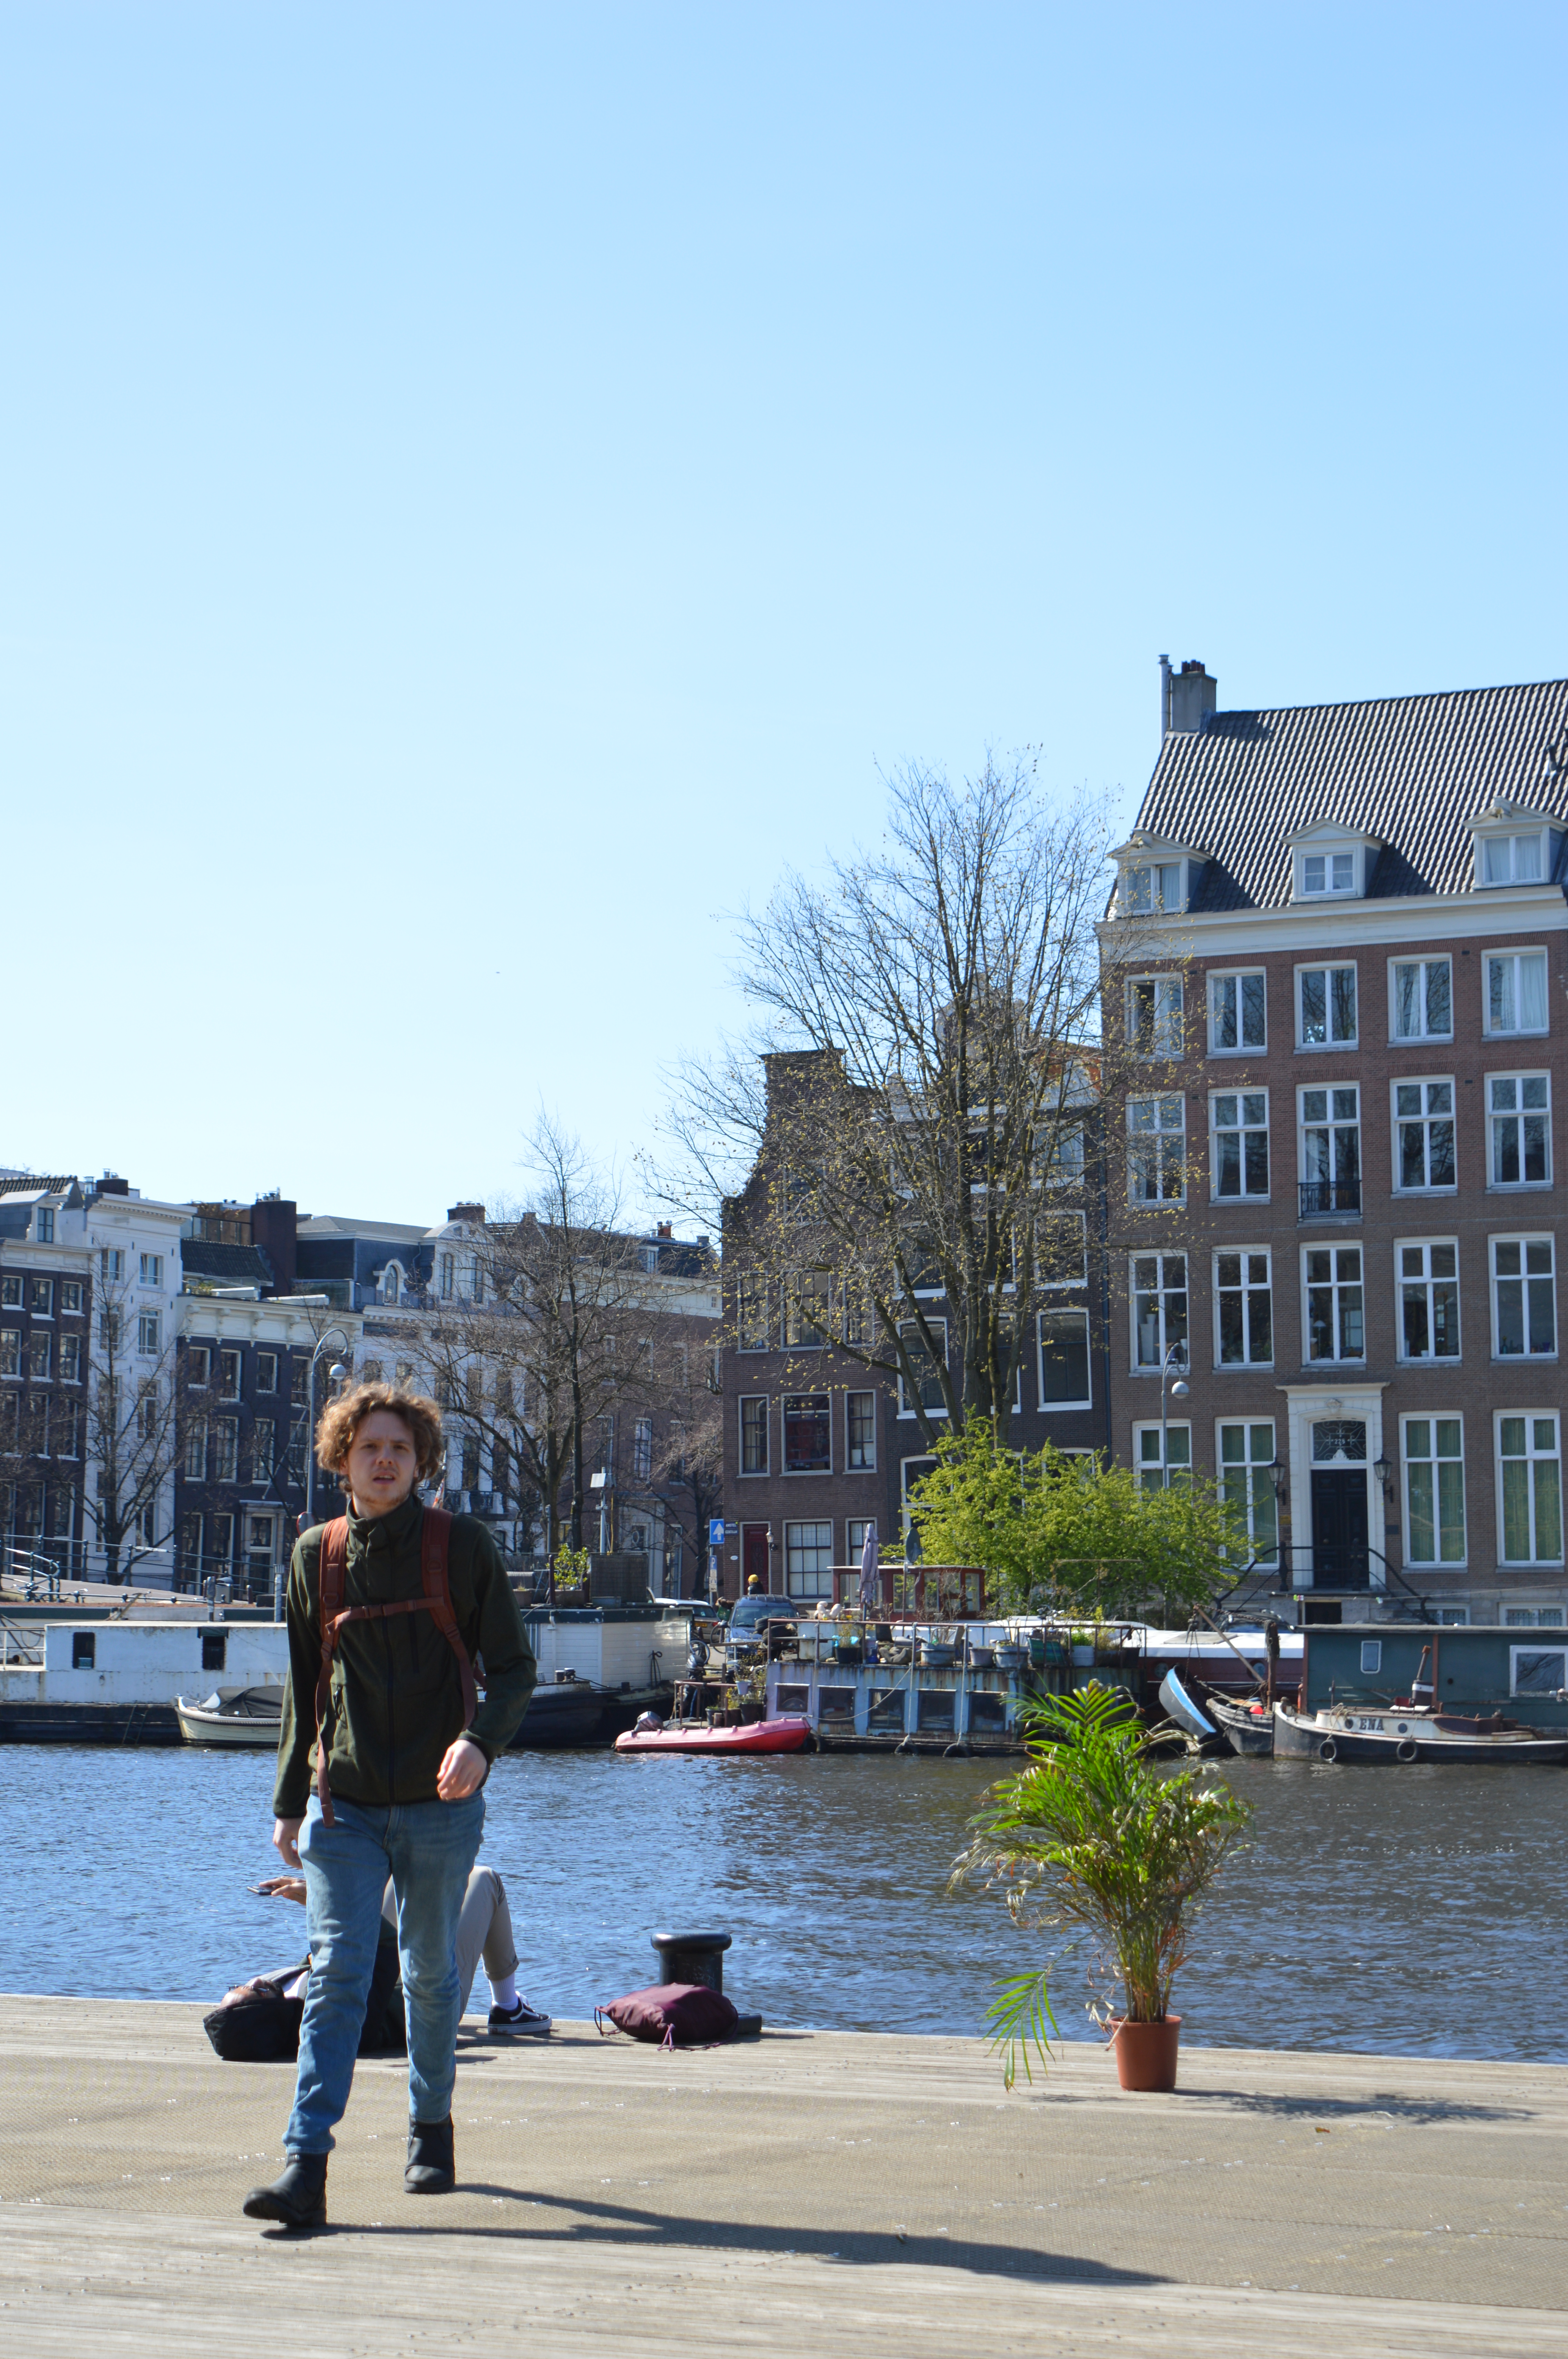 man walking away from the water in Amsterdam